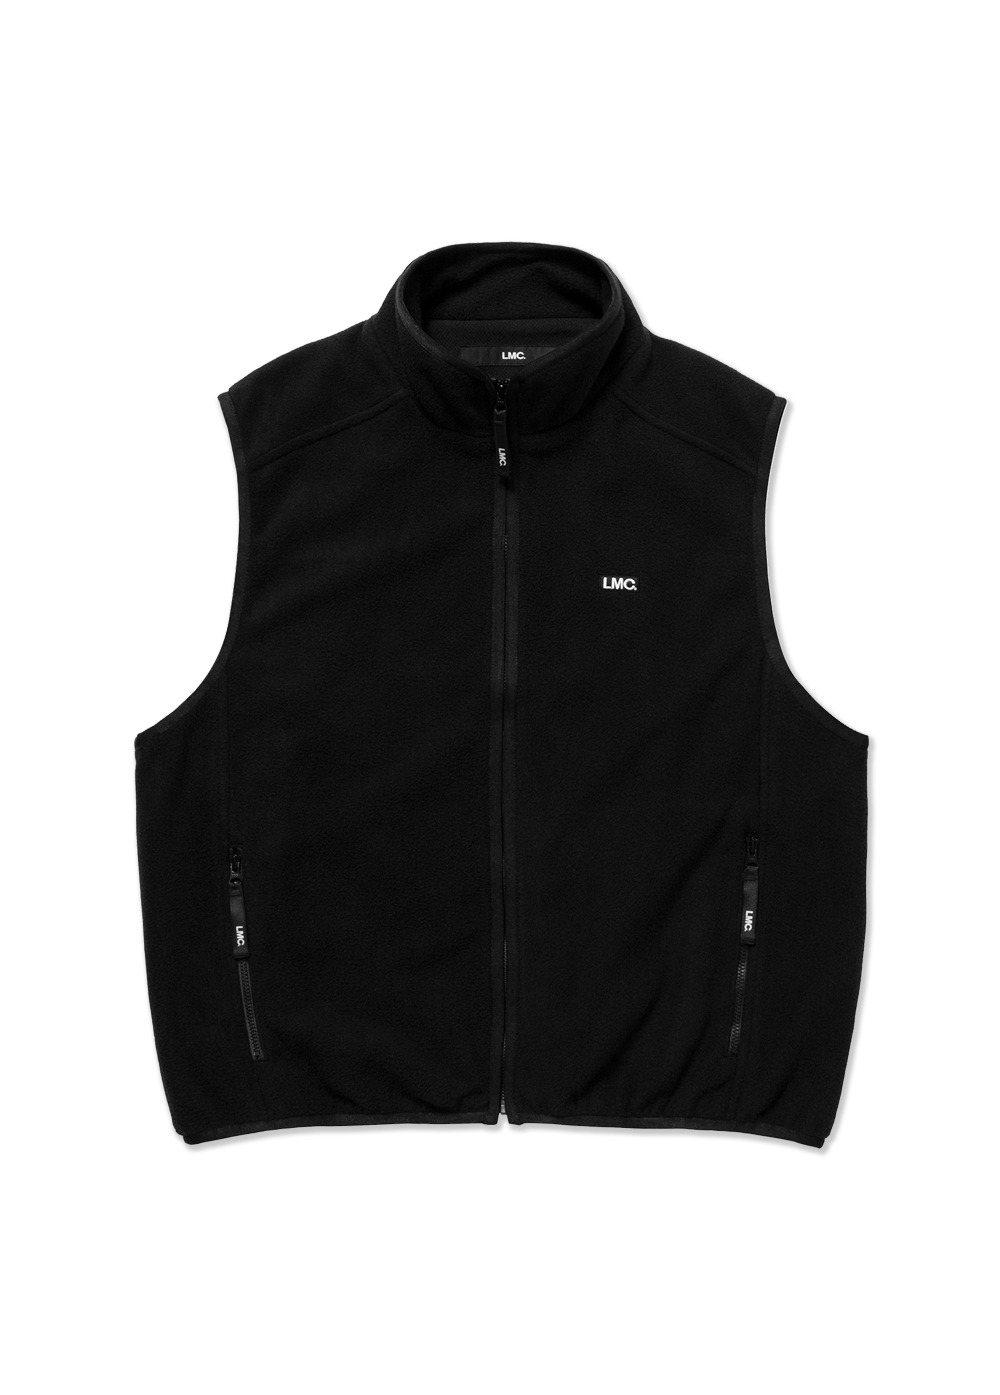 LMC POLAR FLEECE VEST black